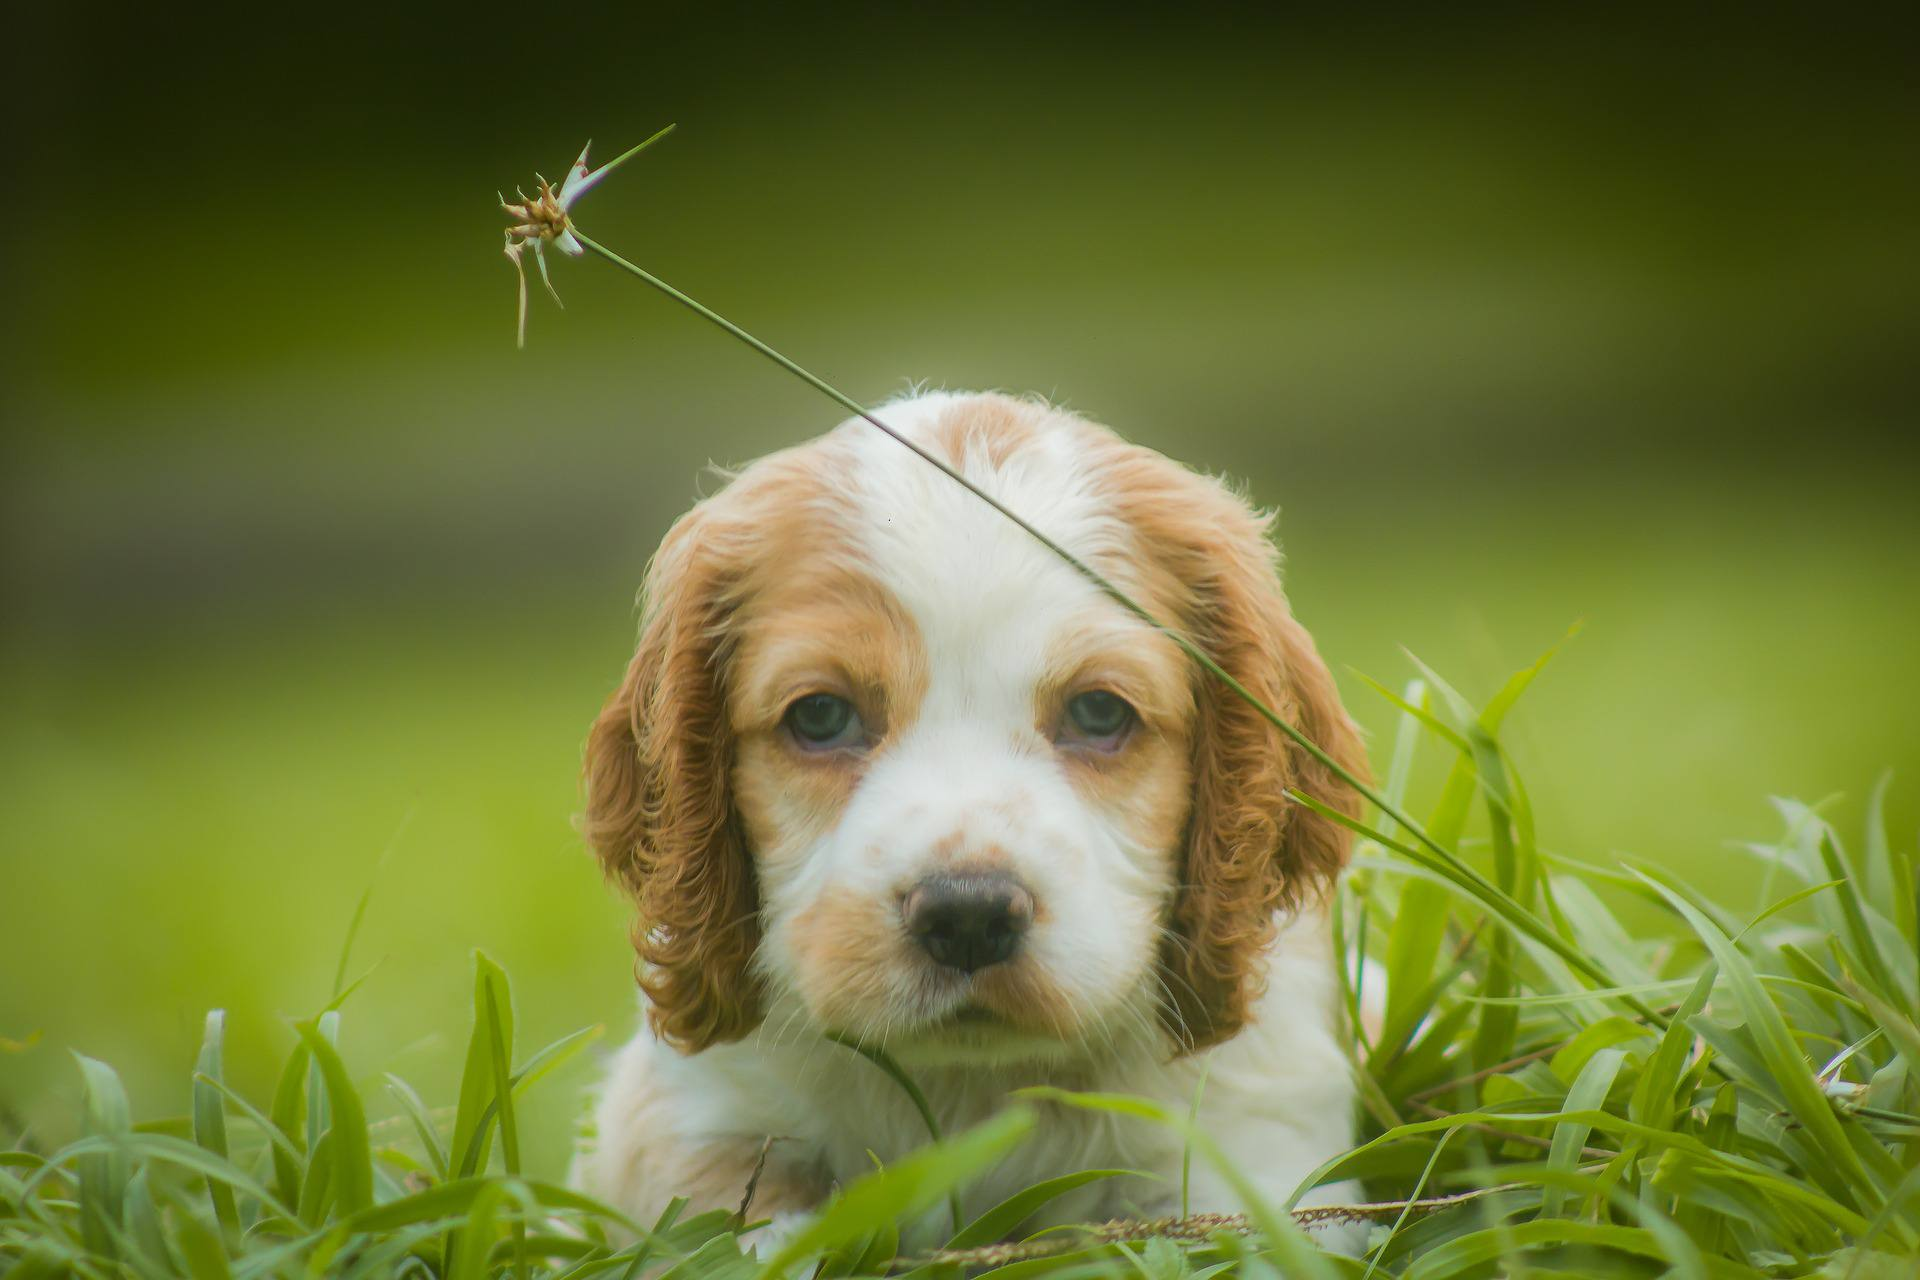 A cocker spaniel puppy looking into the camera.